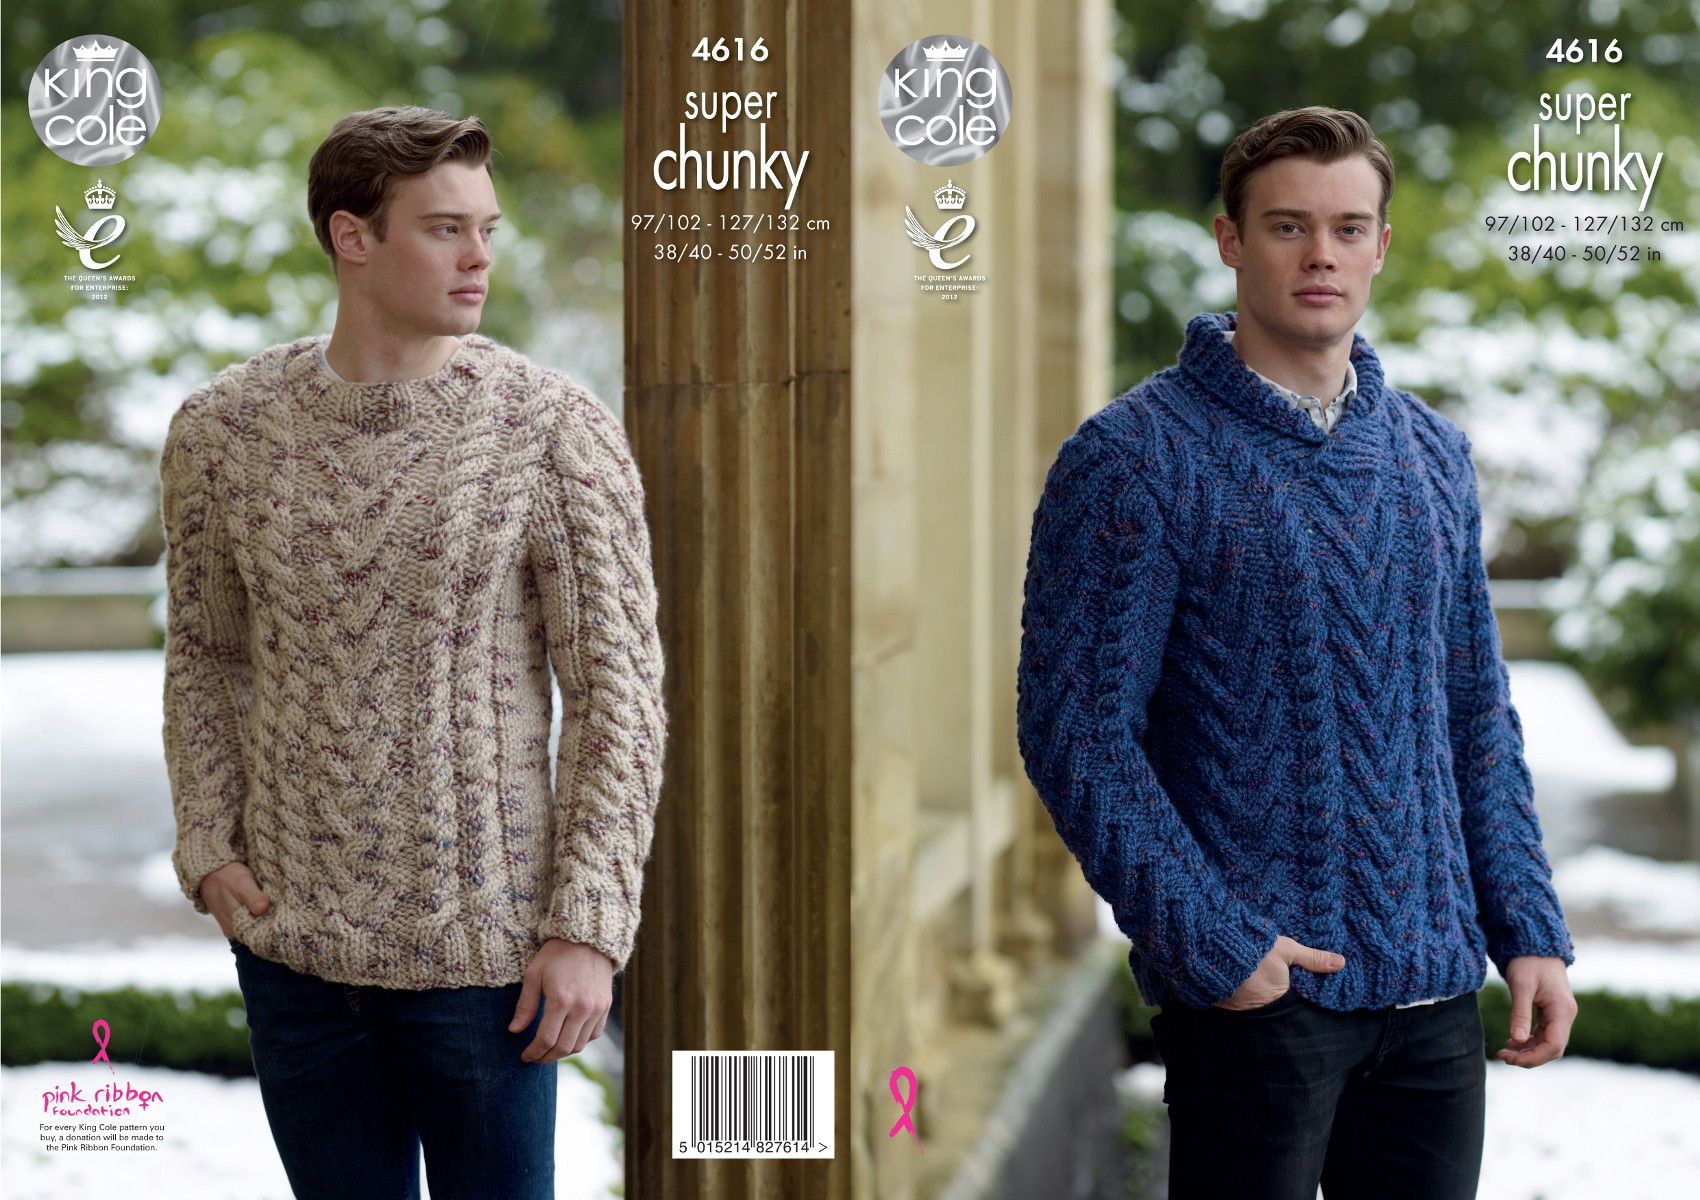 Knitting Pattern Mens Cardigan Details About King Cole Mens Super Chunky Knitting Pattern Round Neck Or Collar Sweater 4616